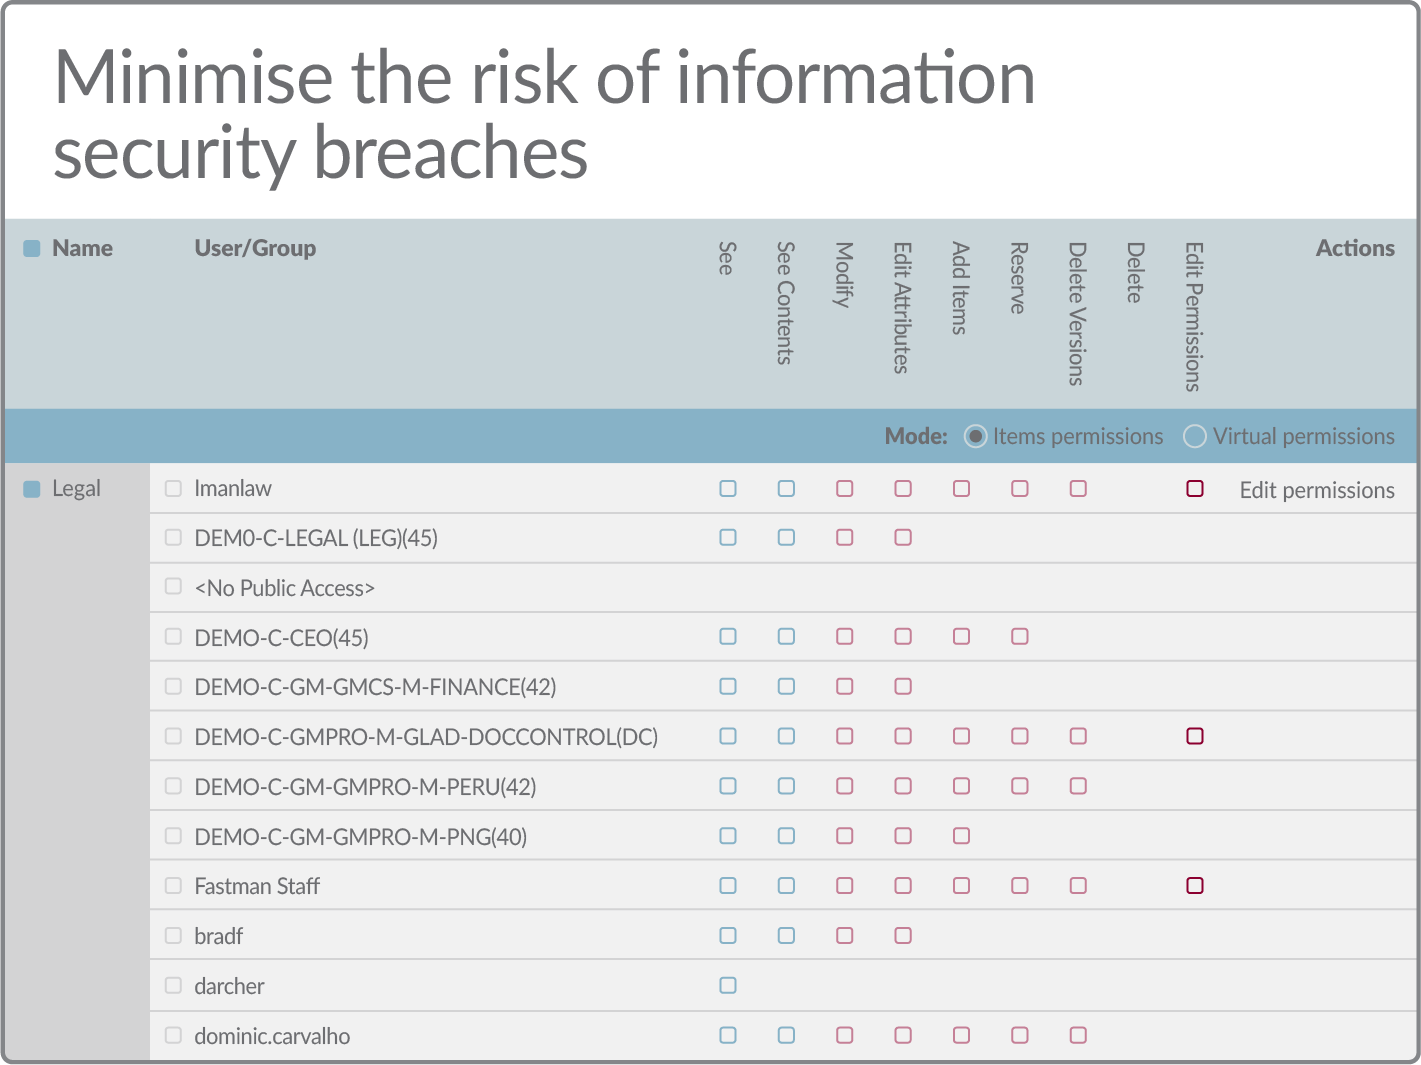 Minimise the risk of information security breaches